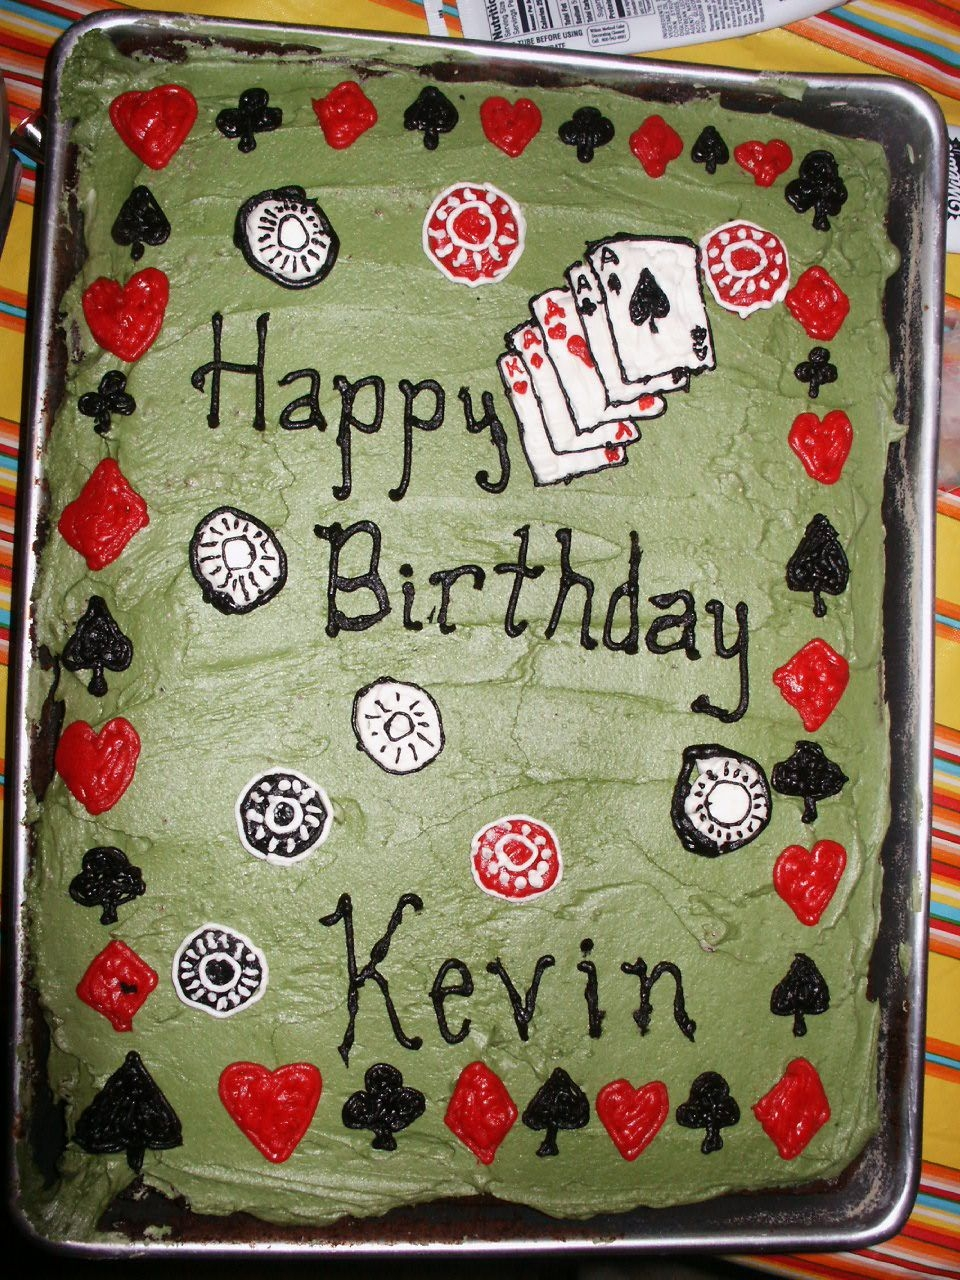 Kevin's Surprise Cake This was for my boyfriend's surprise party. I was very upset when his mother decided to buy a cake as well (because she was afraid a...